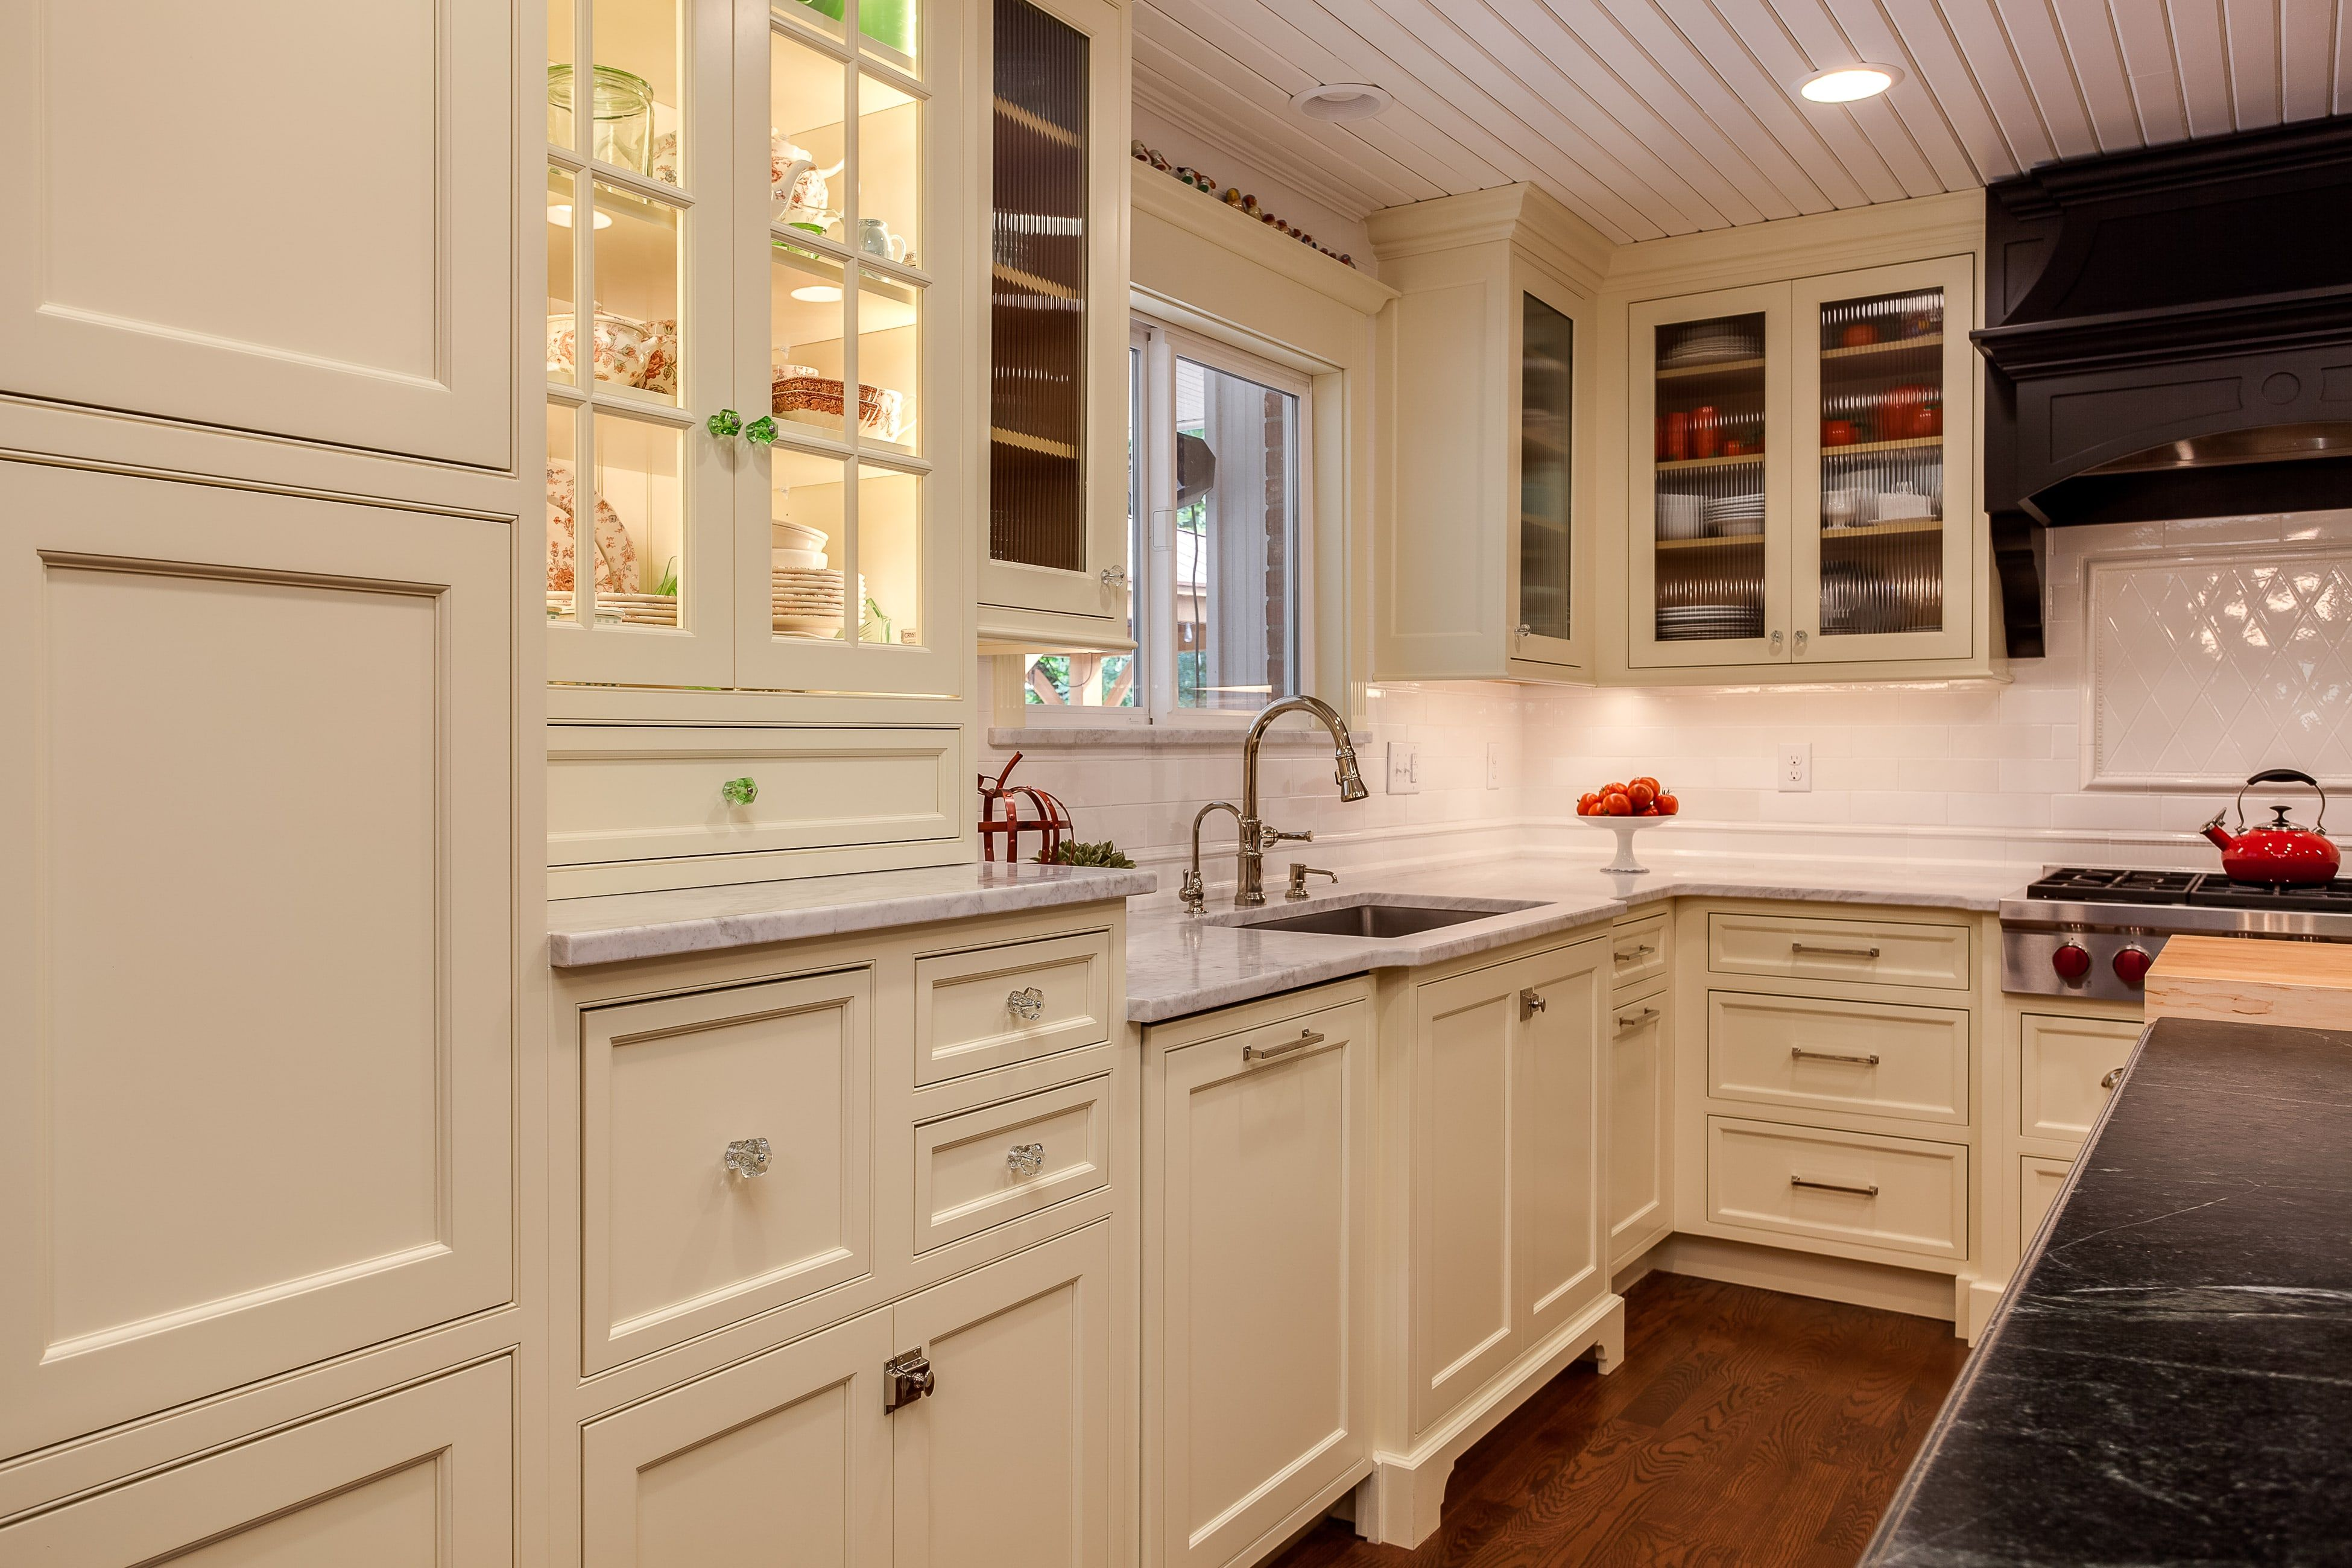 Off White Shaker Cabinets With Textured Glass Kitchen Design Kitchen Cabinet Design Stylish Kitchen Design